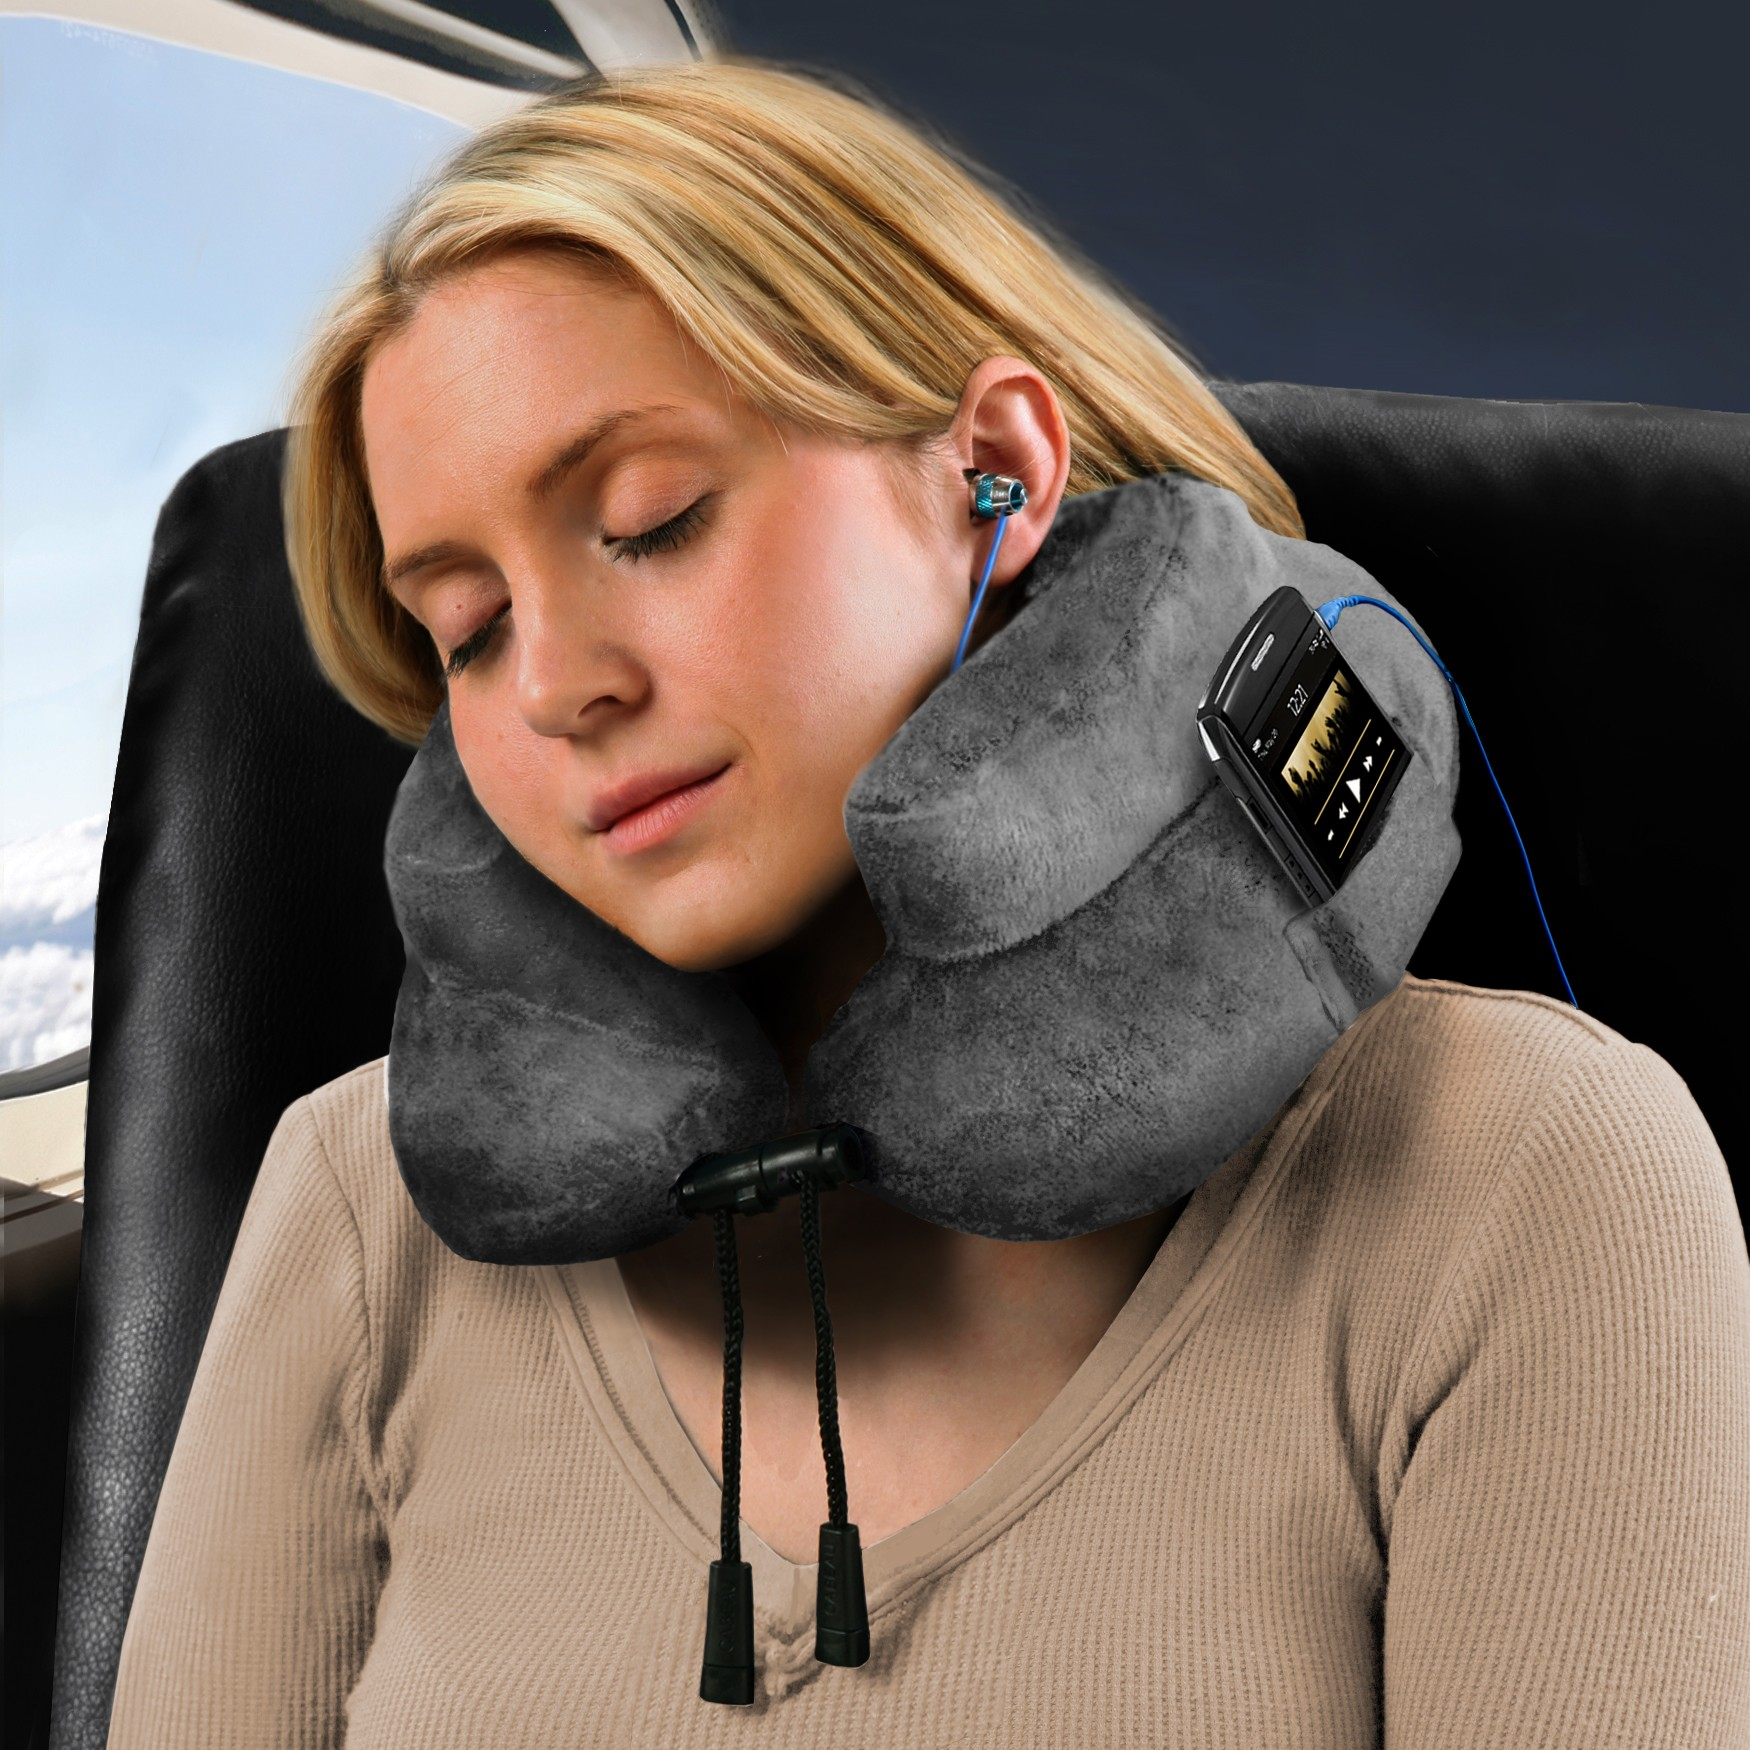 https://www.sleepsolutions.com.au/pillows/travel-pillows